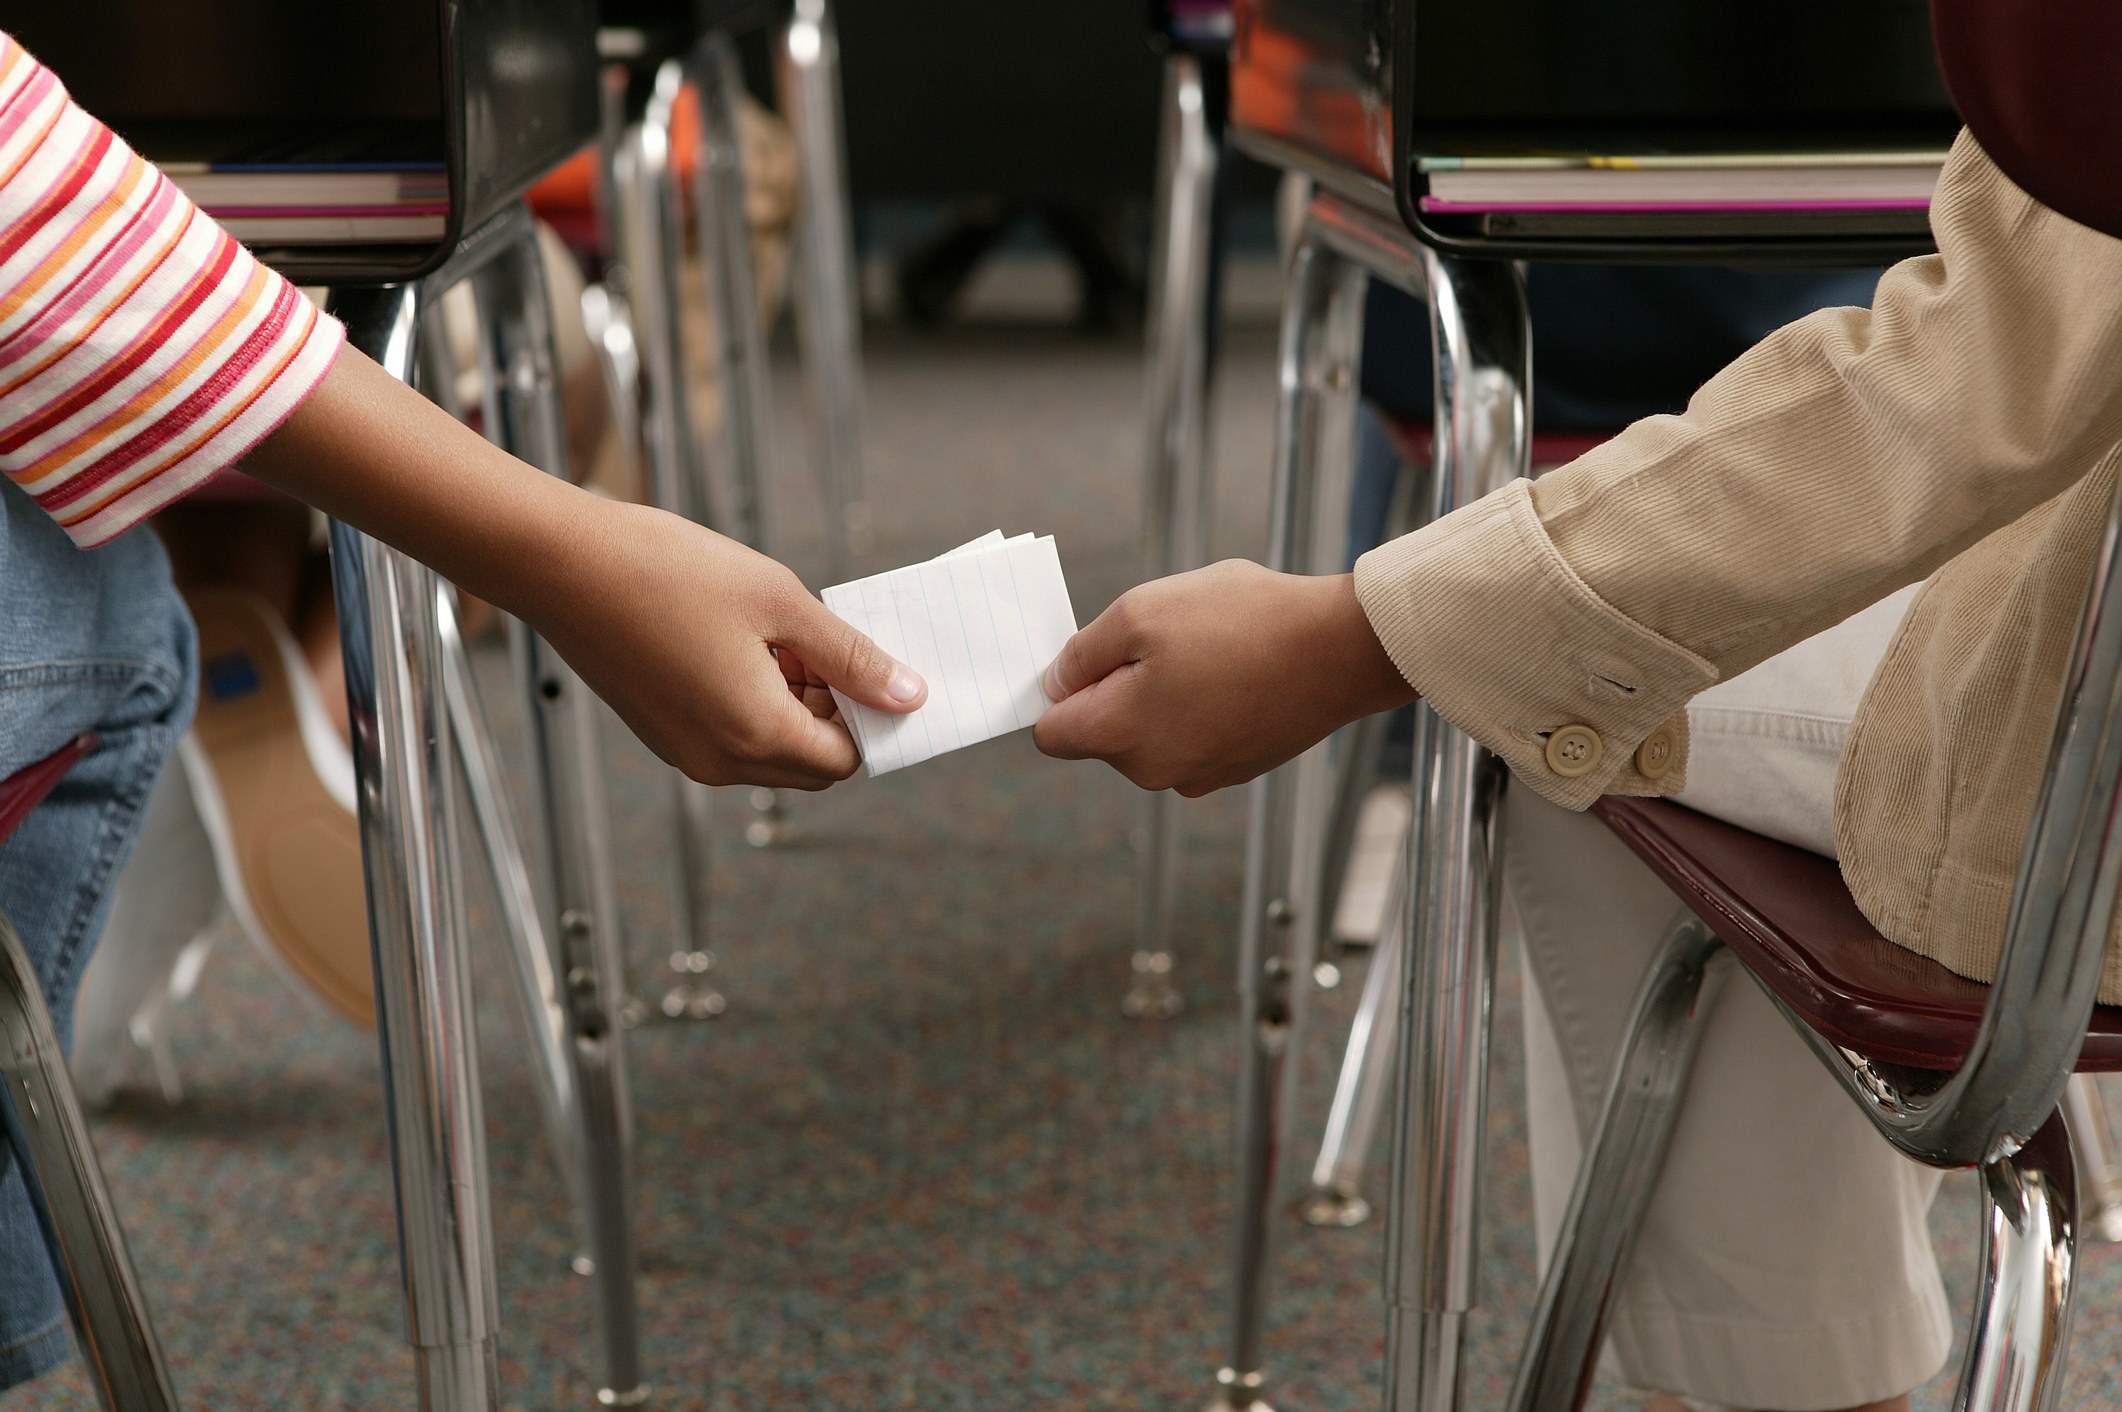 Stock image close up of two kids passing a note in class